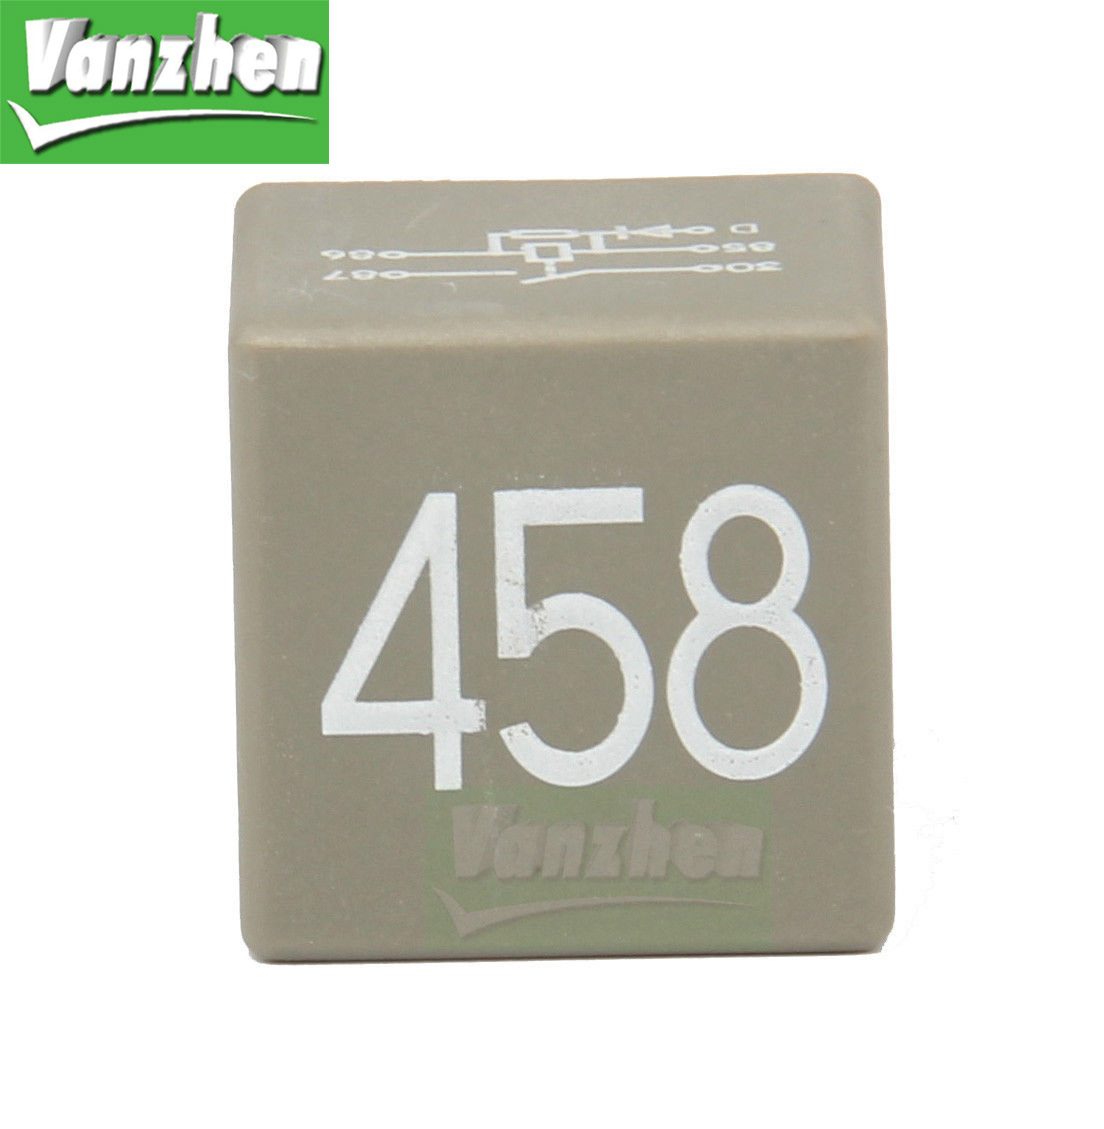 hight resolution of details about contact fuse box relay 458 for vw eos golf mk6 gti jetta mk5 passat b6 audi a3